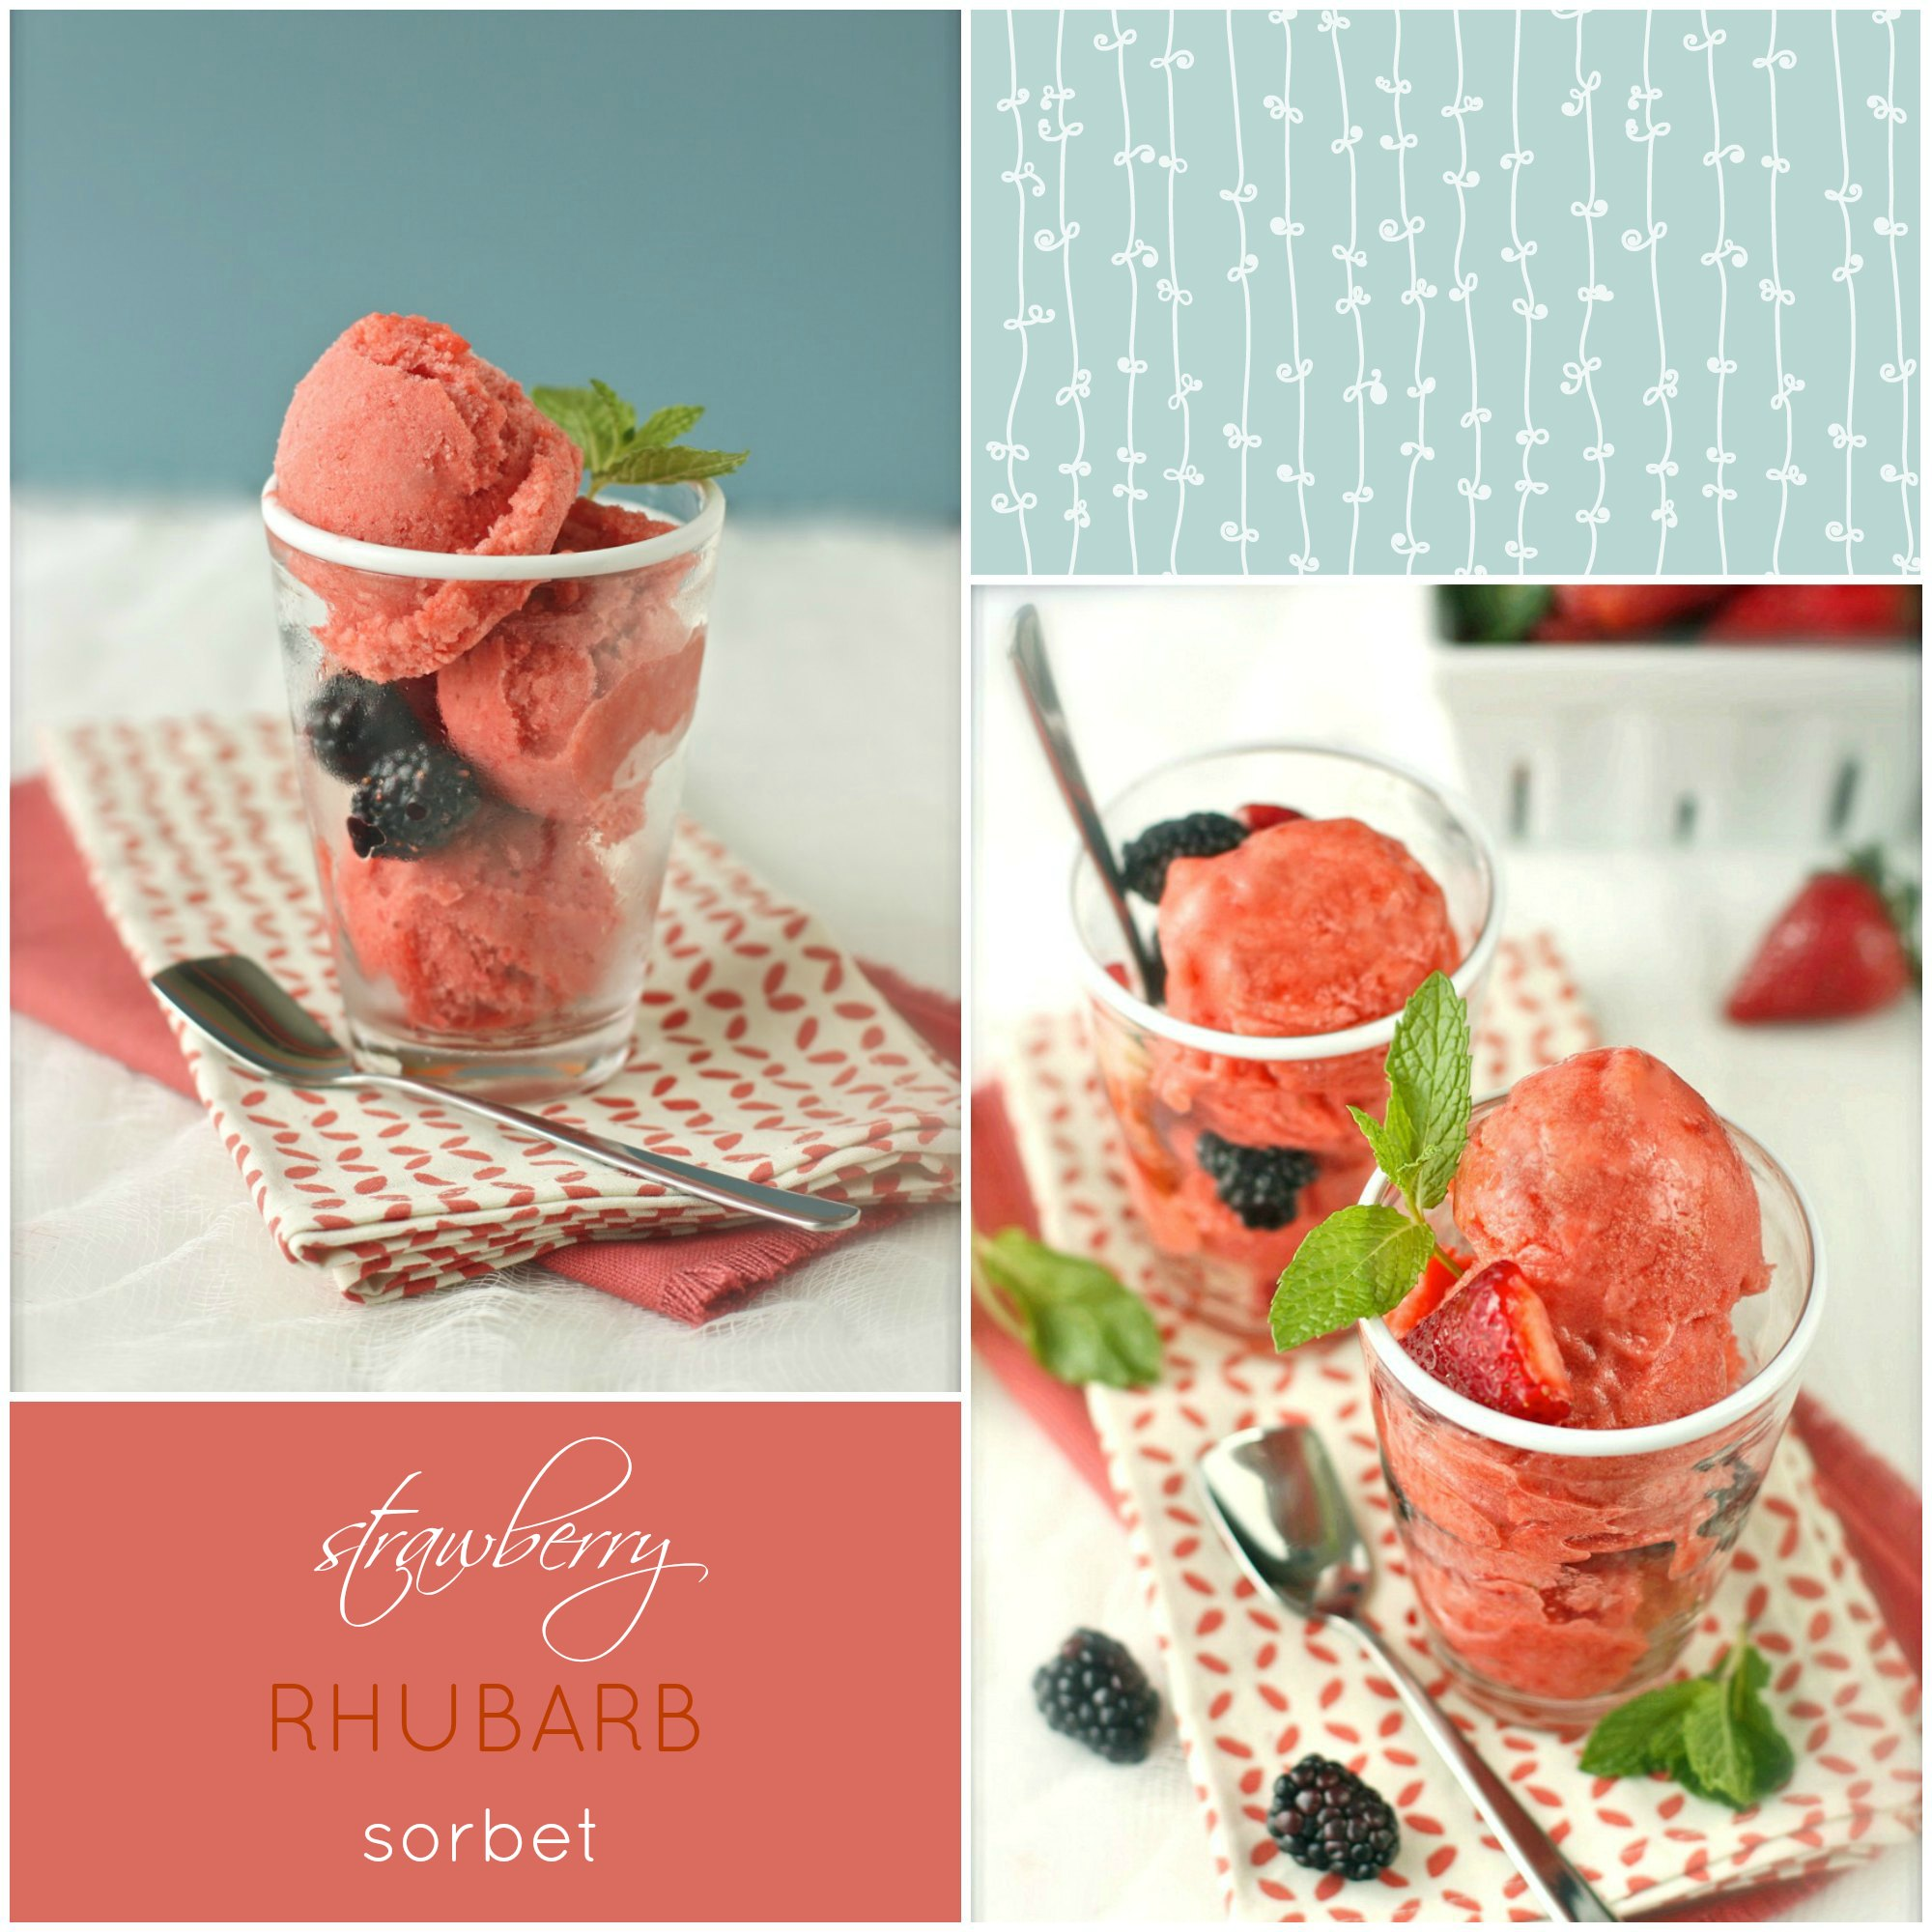 For the full article and recipe for Strawberry-Rhubarb Sorbet , click ...